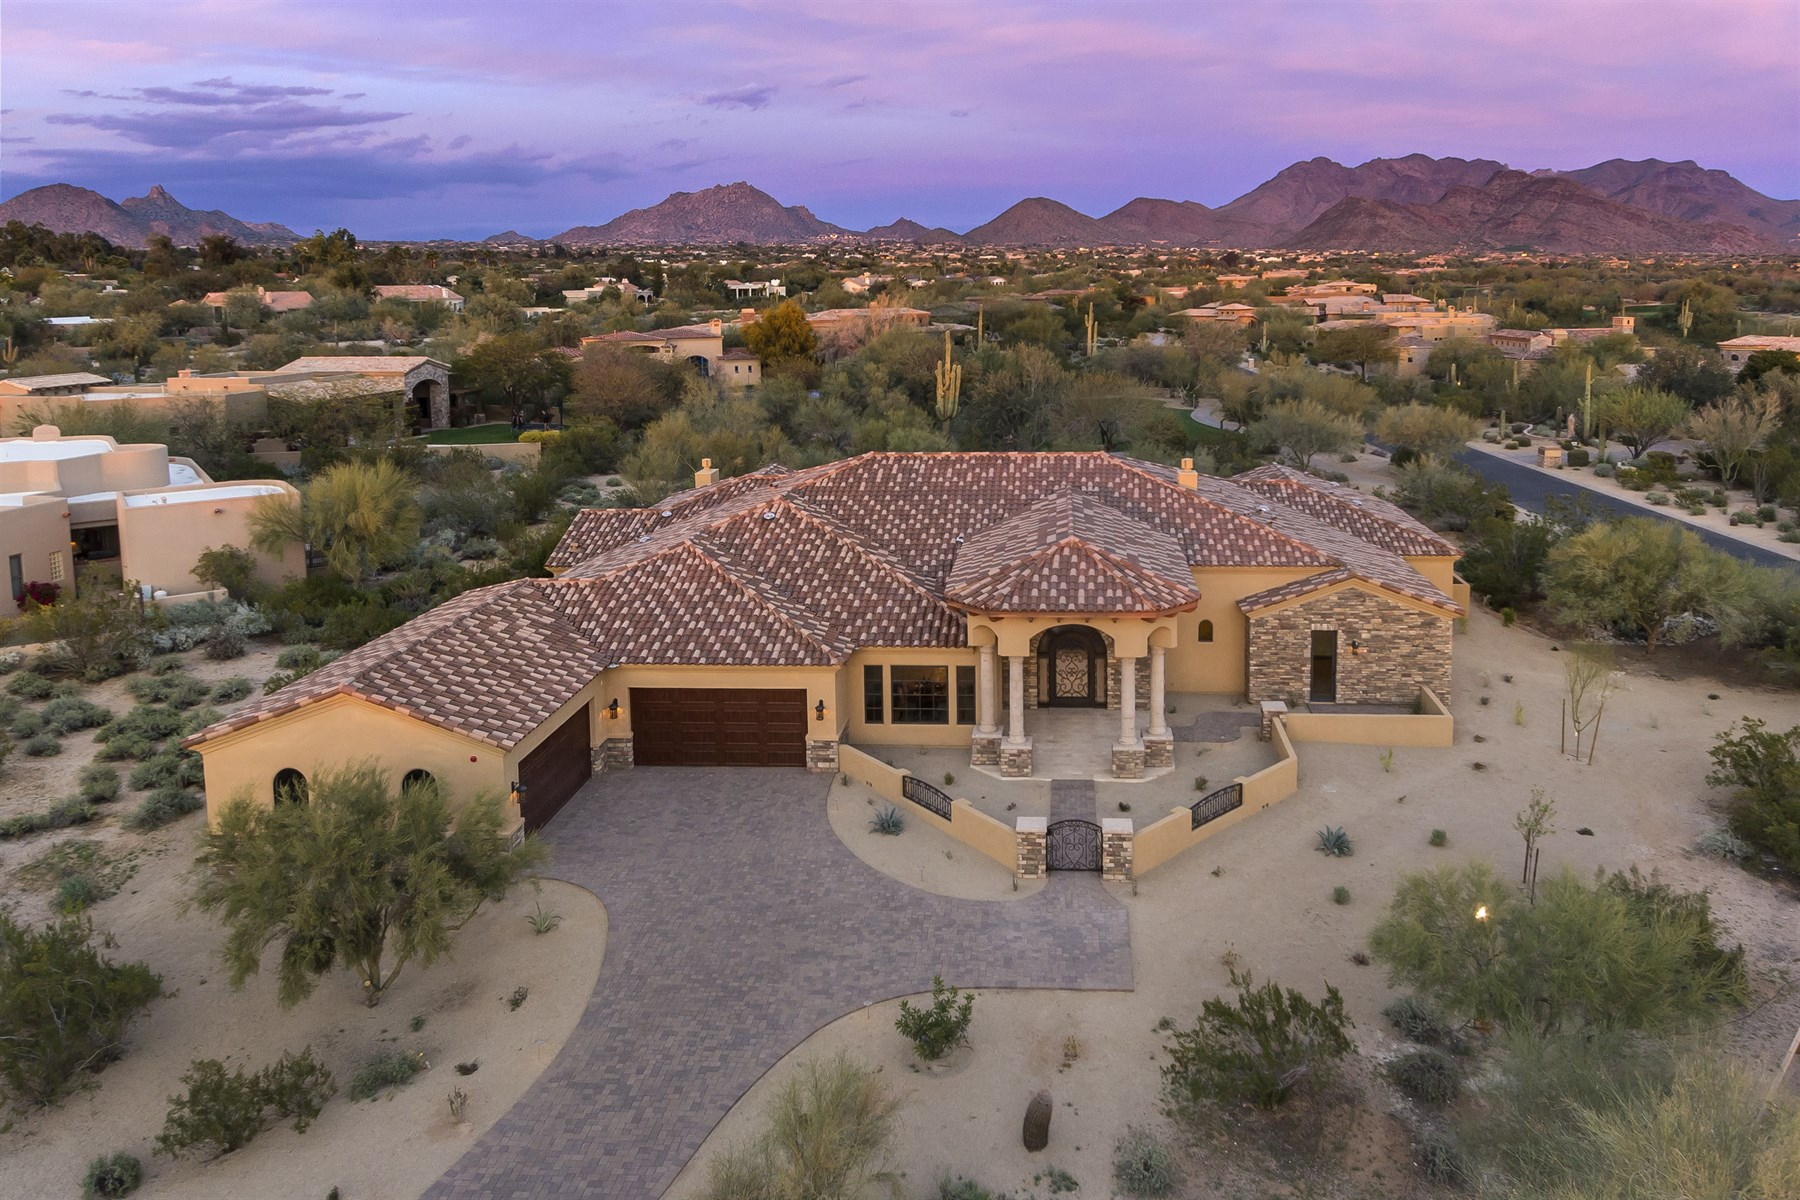 Single Family Home for Sale at Brand New Custom Home In The Private Enclave Of Serenity At Grayhawk 8118 E Fledgling Drive Scottsdale, Arizona 85255 United States